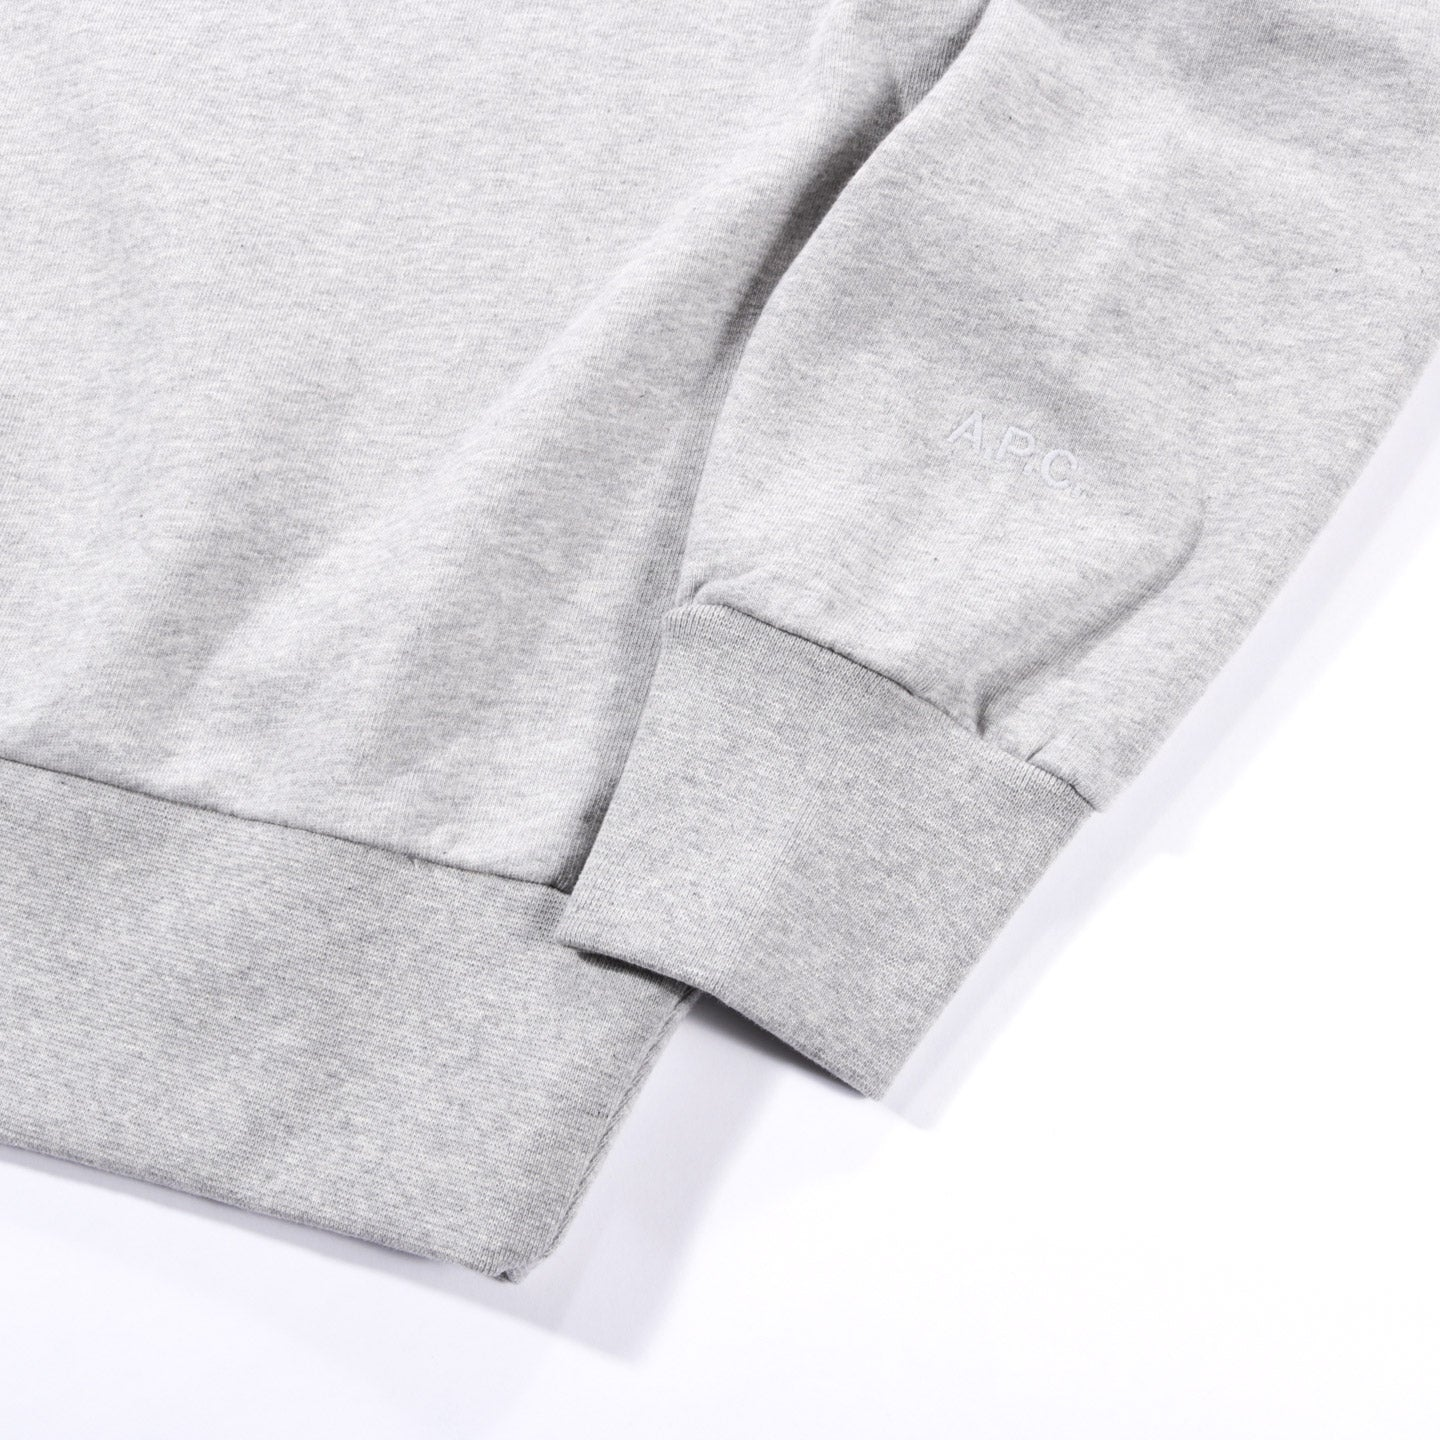 A.P.C. JJJJOUND JUSTIN SWEATSHIRT HEATHER GREY